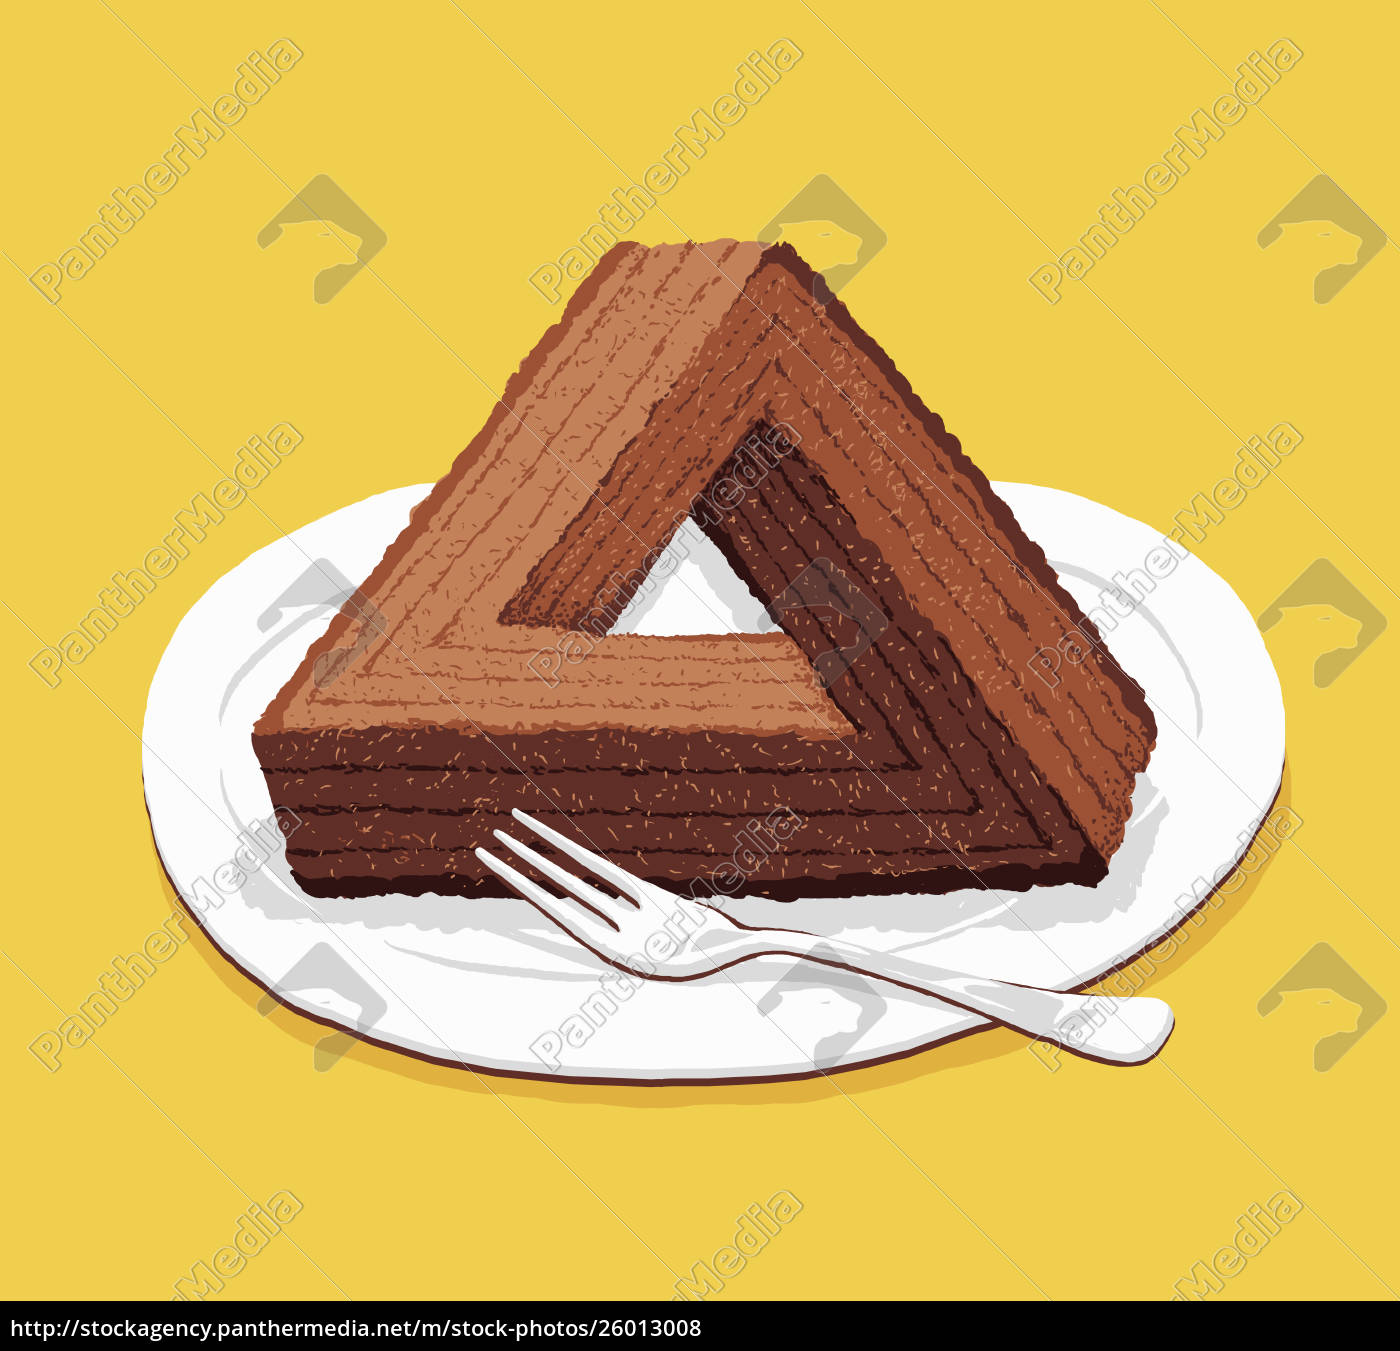 optical, illusion, triangular, chocolate, cake - 26013008